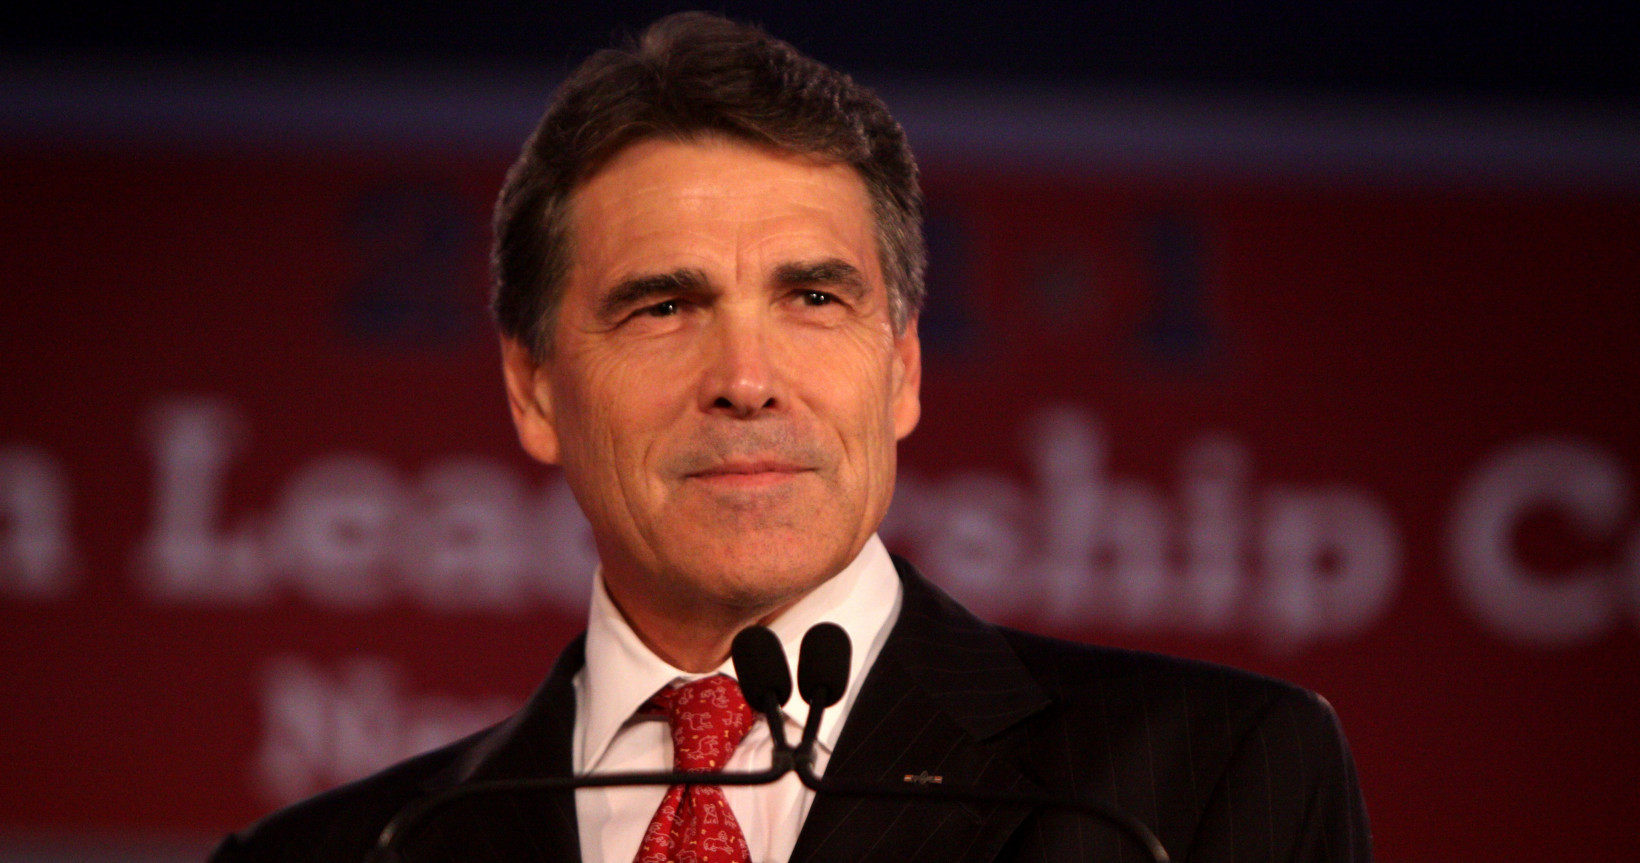 Former Texas Governor Rick Perry fell for an old-school Instagram hoax